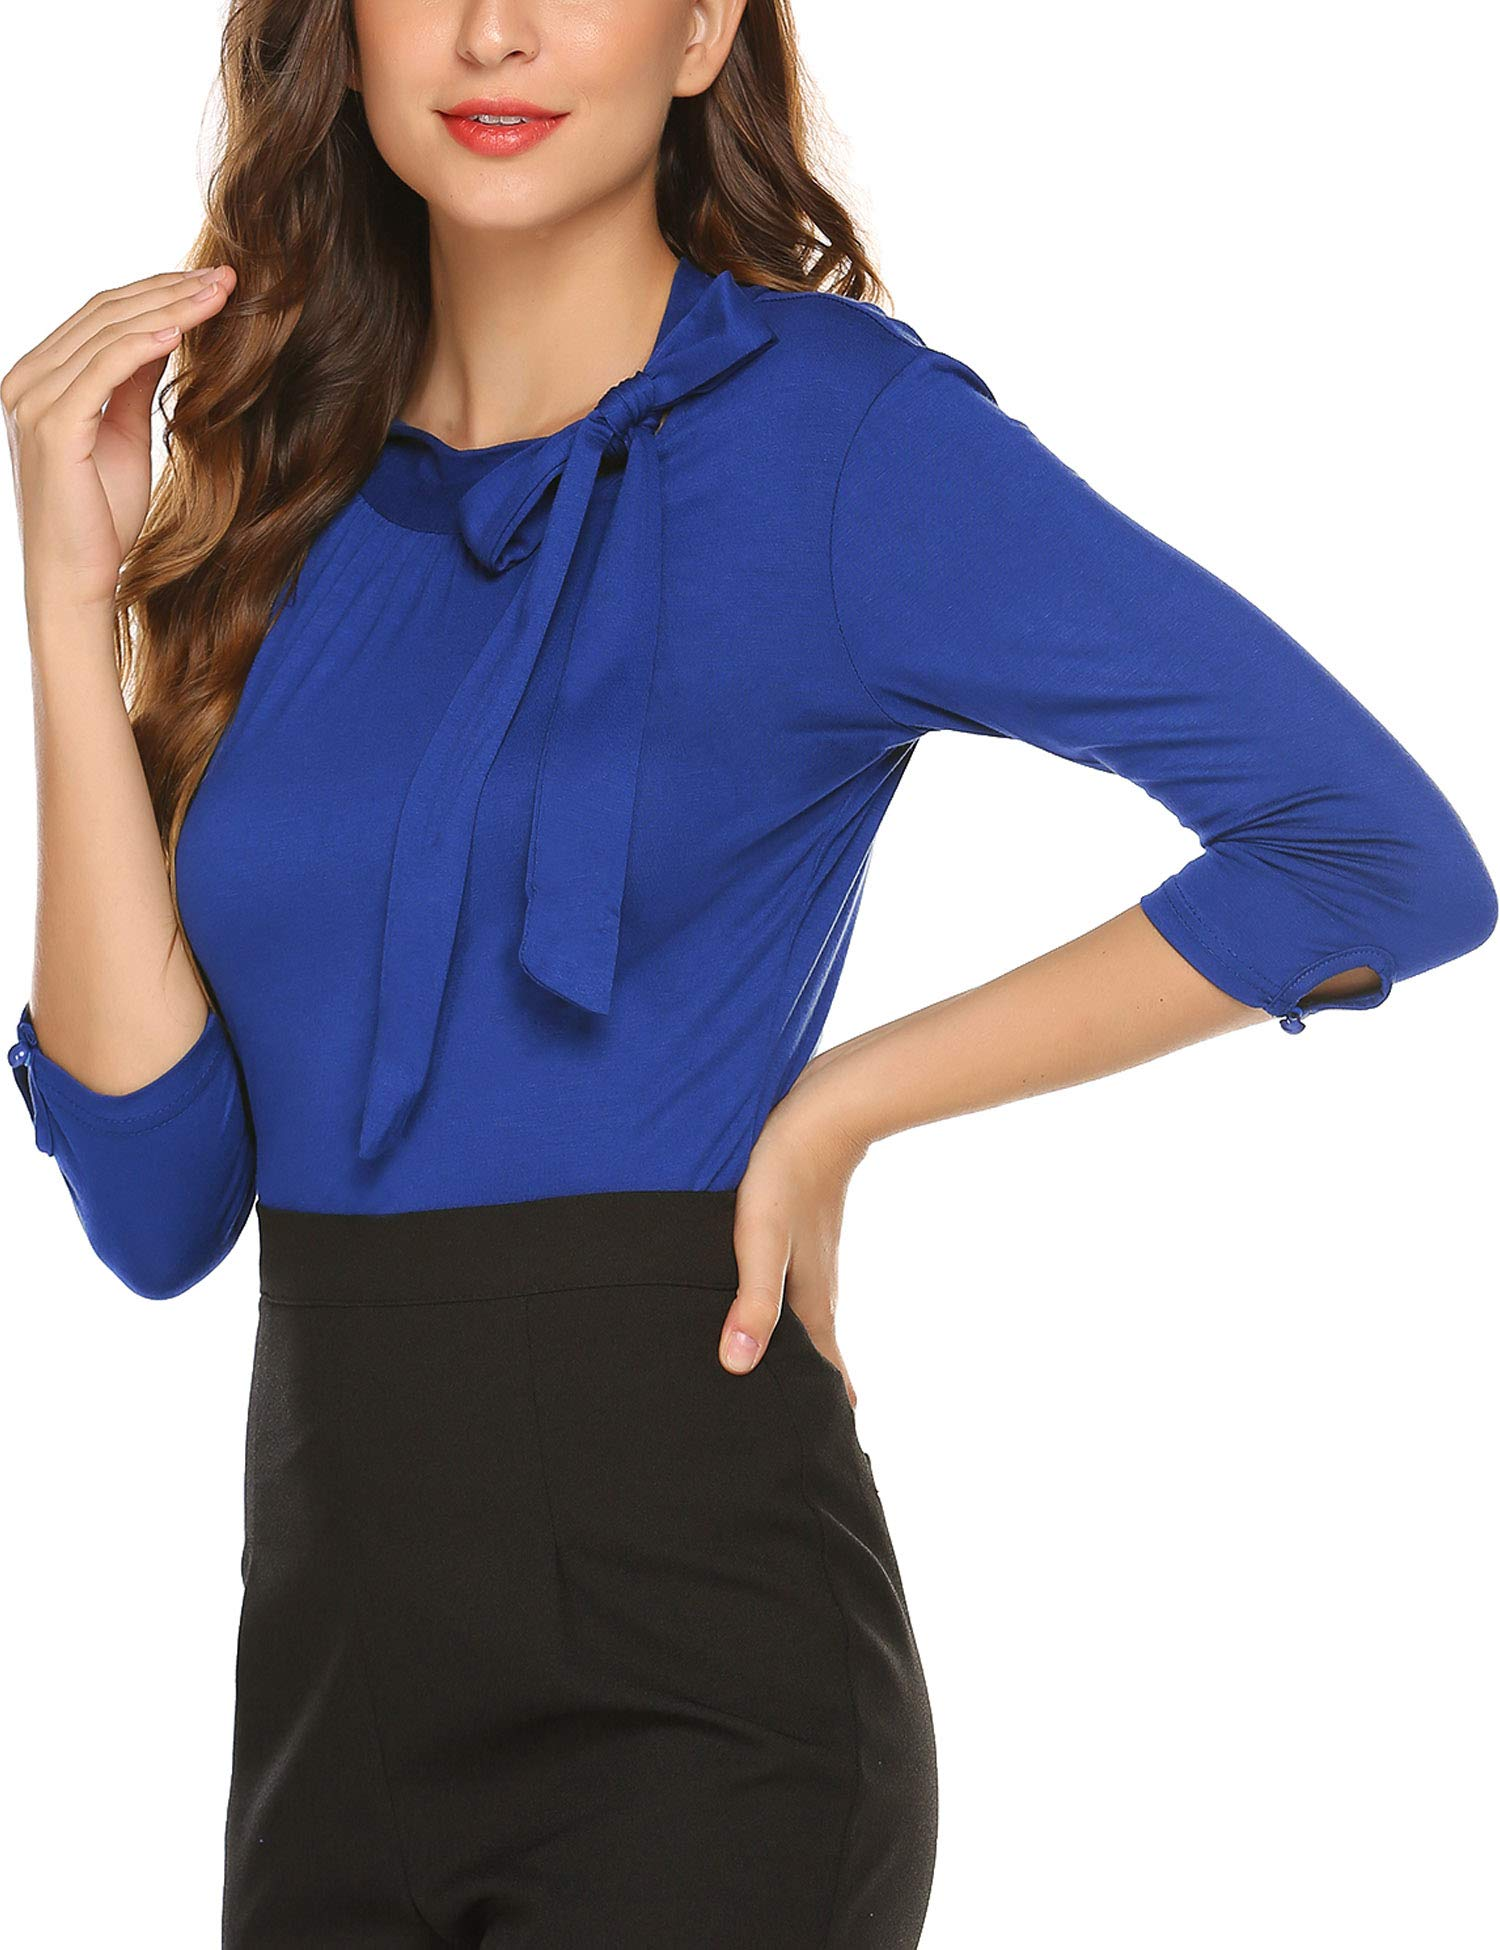 SoTeer Womens Bow Tie Neck Long/Short Sleeve Casual Office Work Blouse Shirts Tops